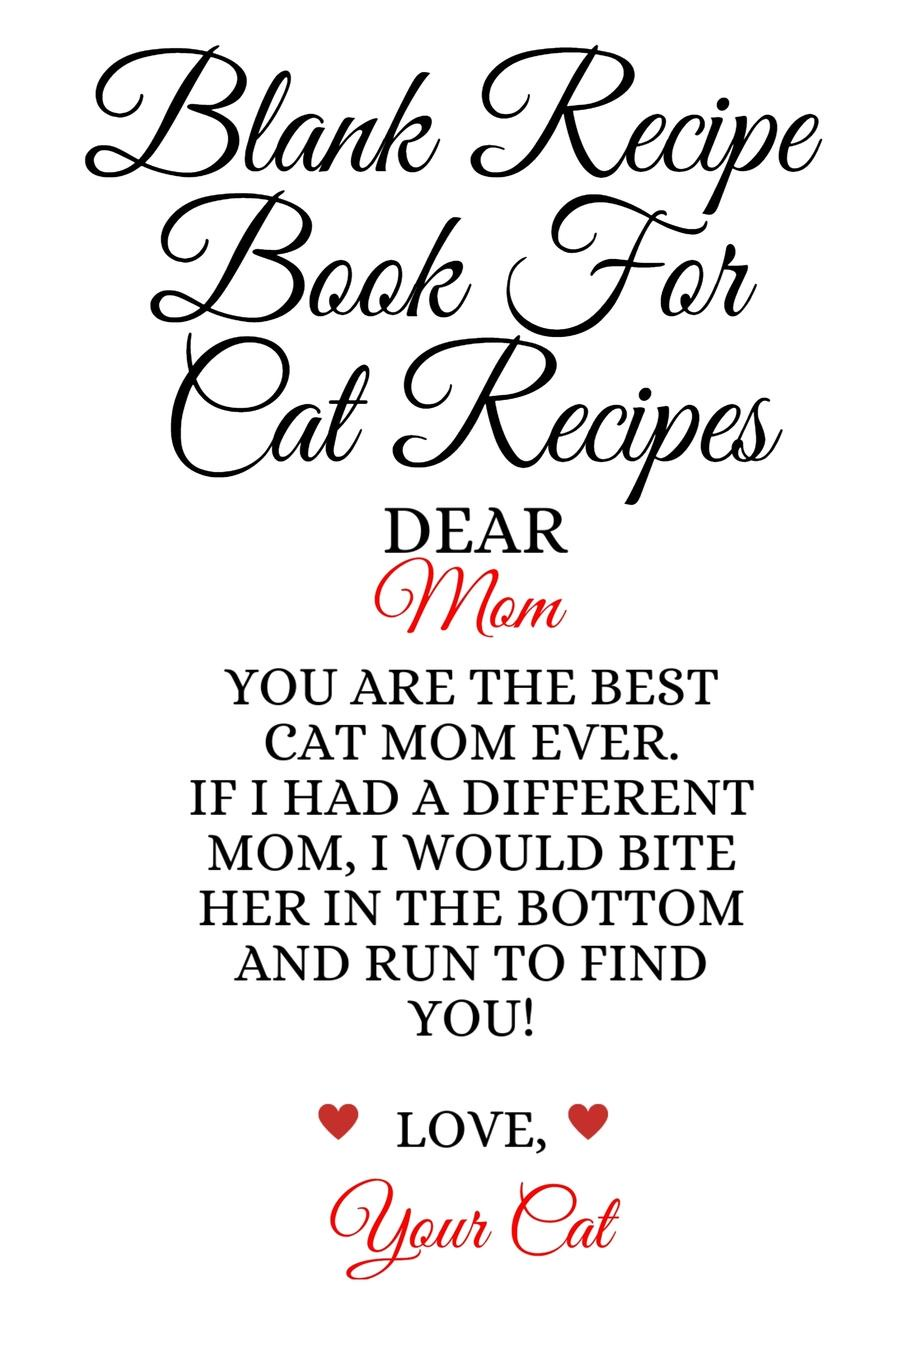 Jennifer Wellington Blank Recipe Book For Cat Recipes. Best Cat Mom Ever Cookbok Journal To Write In Favorite Cat Recipes, Notes, Quotes, Stories Of Cats - Cute Kitty Recipe Book Gift For Mother's Day From Daughter, Son, Kid, Hubby, BF, Stepson - Notepad, 6x9 Lined P... journal jungle publishing my recipe book 100 recipe pages conversion tables quotes and more make your own cookbook using this blank recipe book 8 x 10 inches pink purple and orange